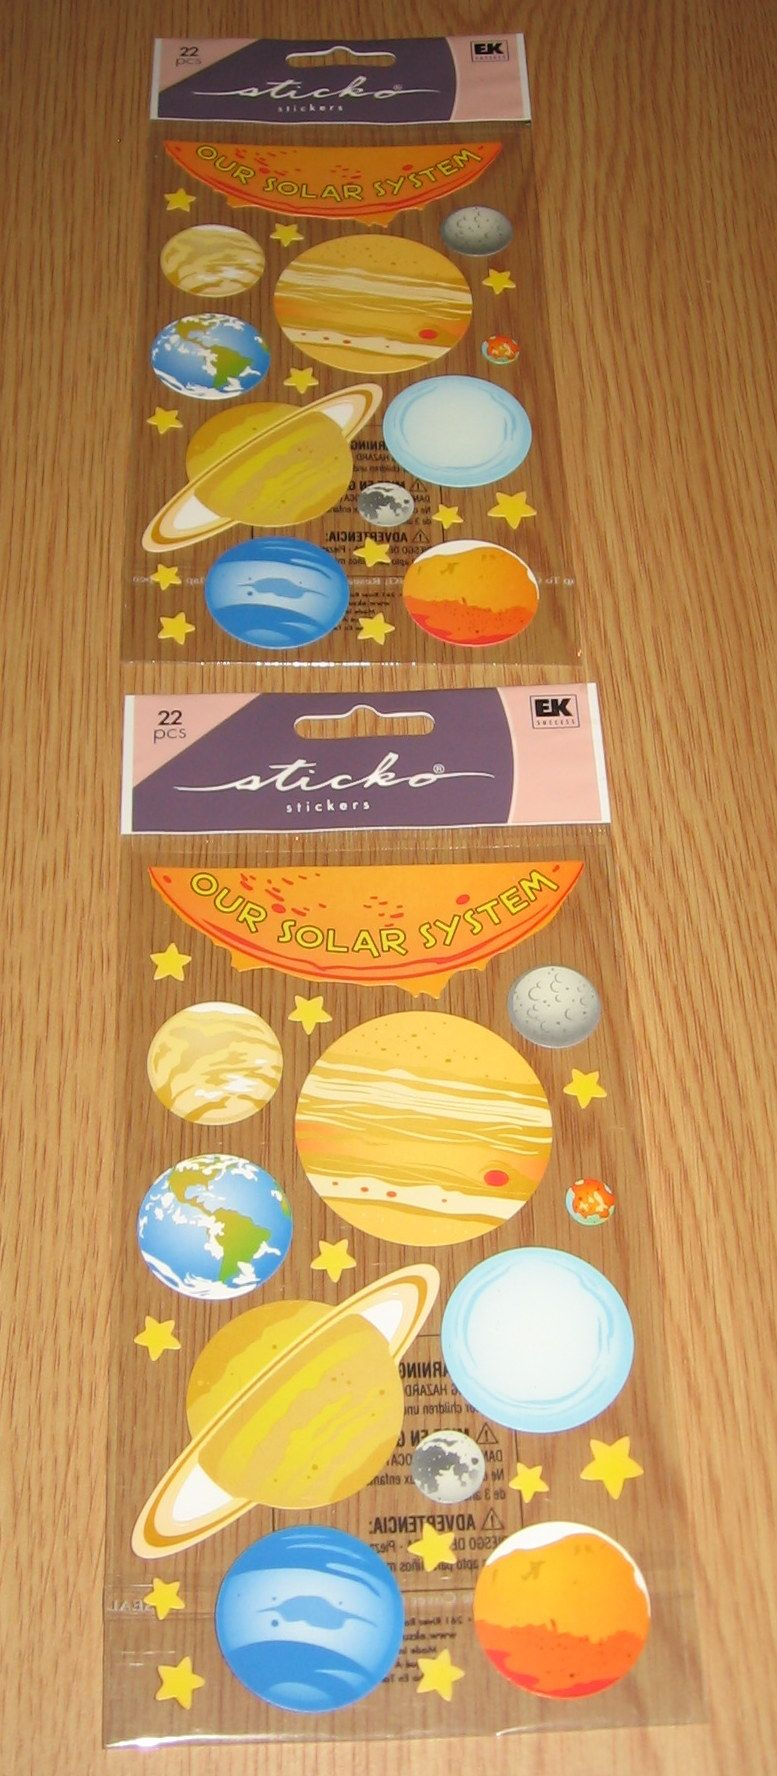 2 Sticko Stickers-Solar System in Saras' Garage Sale in Foresthill , CA for $2.25. I'm selling 2 packages of Sticko StickersTheme-Solar SystemI also sell on eBay and Yardsellr and have a good rating.I will ship 2 packages for 3.00. This will include shipping, delivery confirmation and shipping supplies.Any questions let me know.